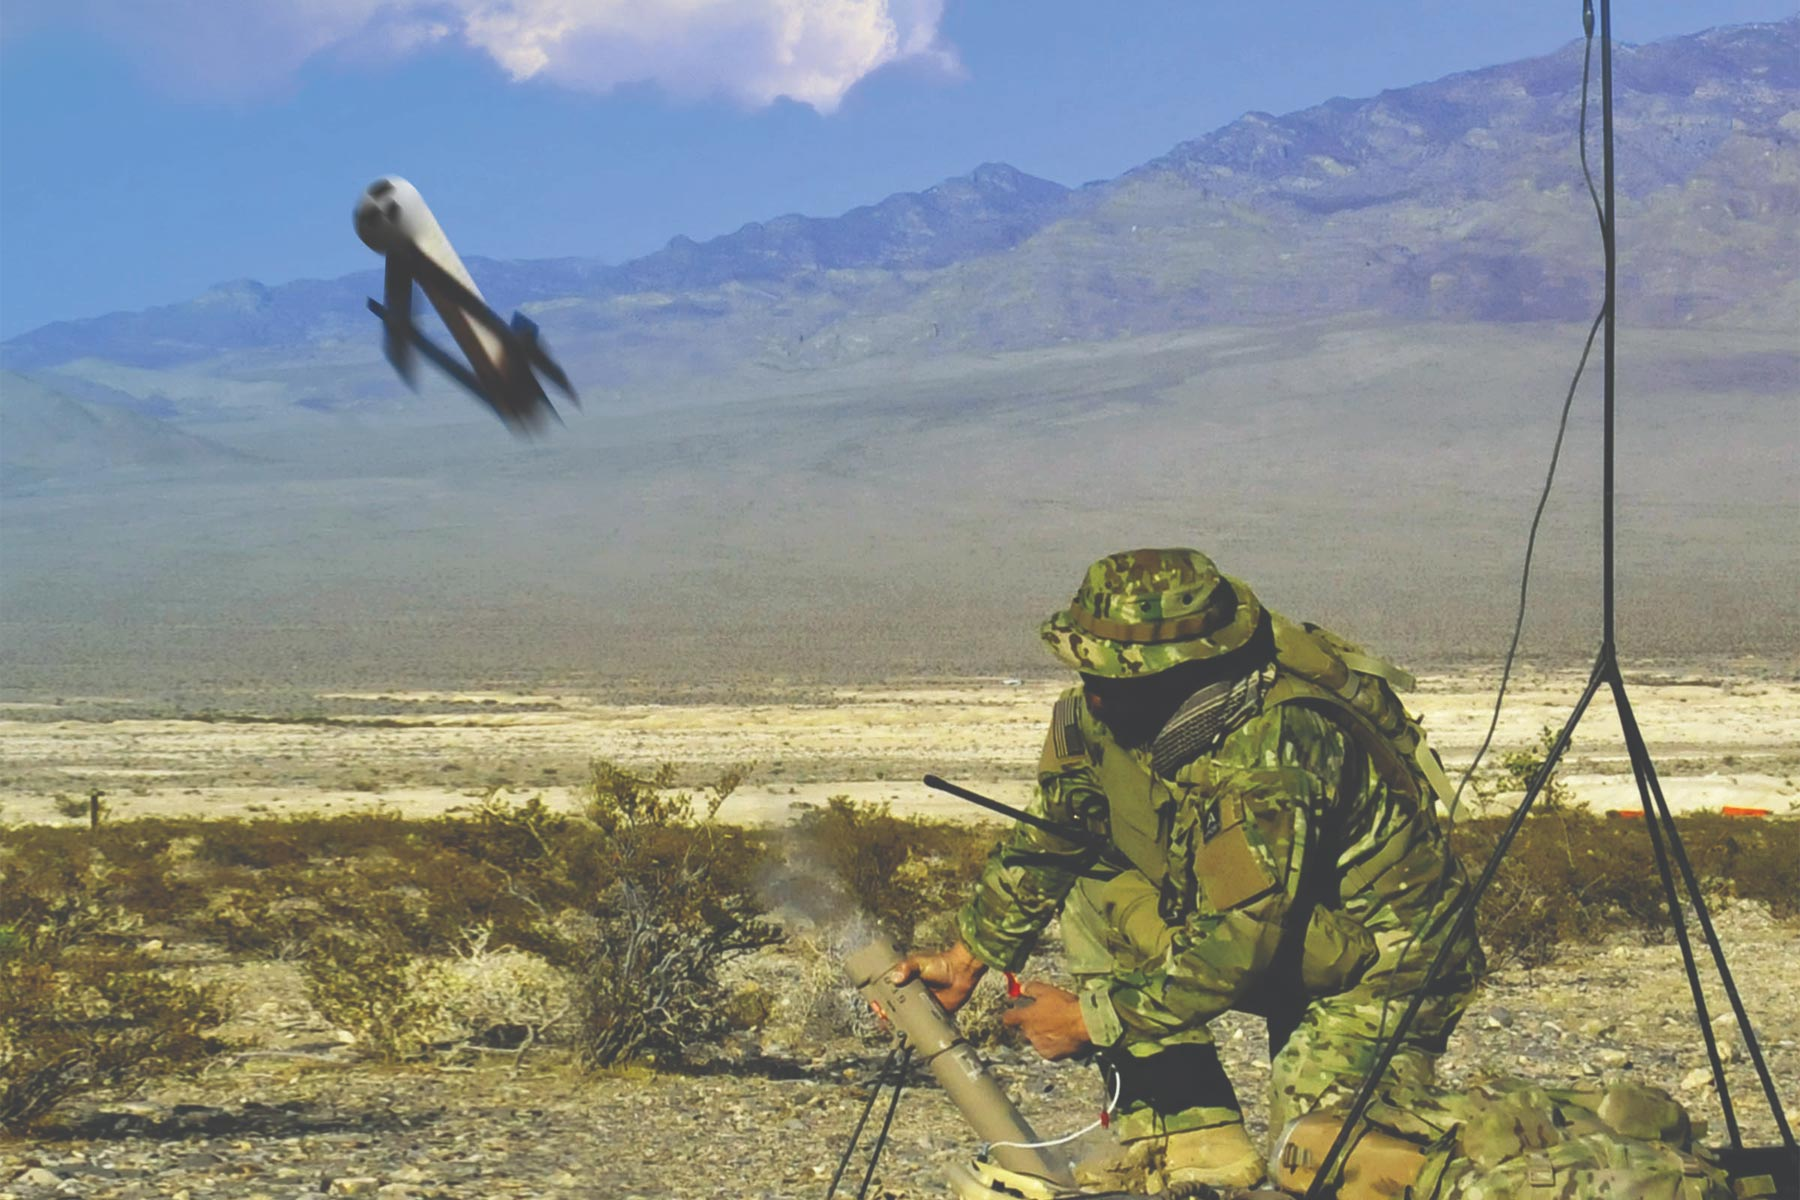 Marines Want a ManPortable System That Fires Kamikaze Drones  Militarycom